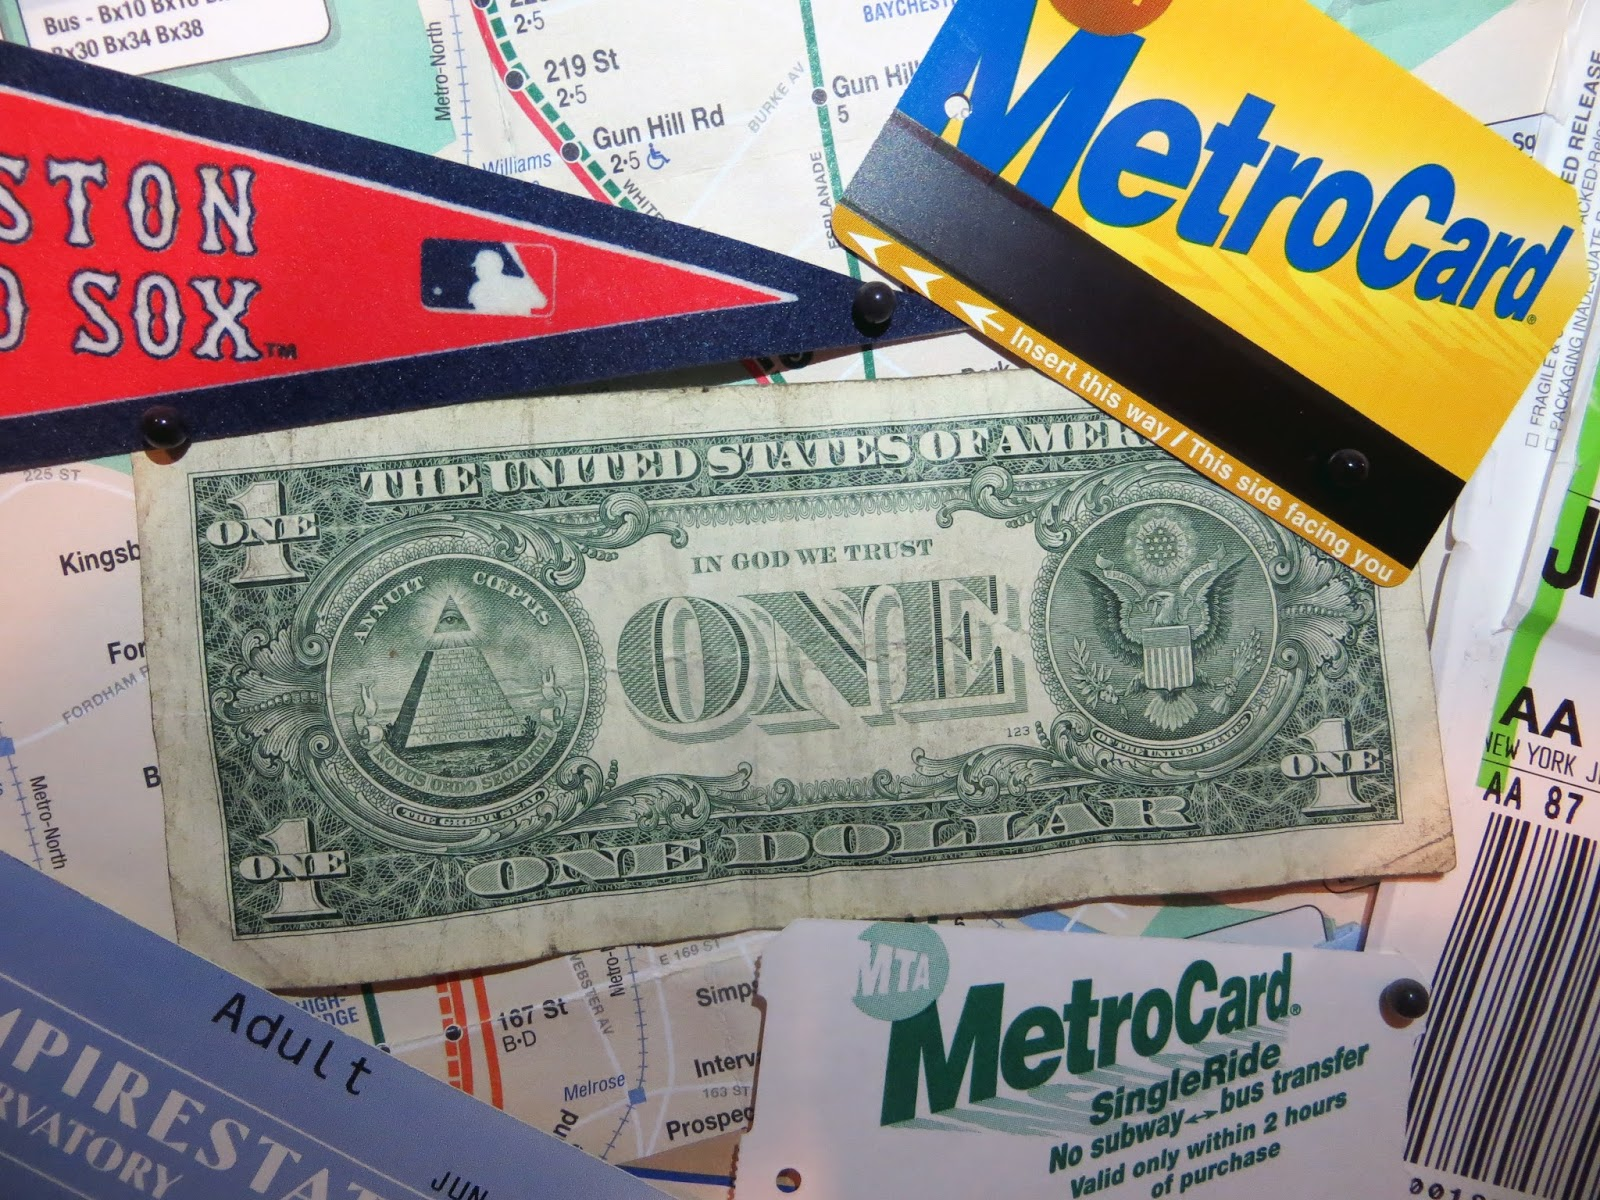 one dollar, how to save for travelling, how to save for traveling, backpacking, travel, vacation, gap year, sabbatical, quit job and travel, money worries, budgeting, loans, debt,